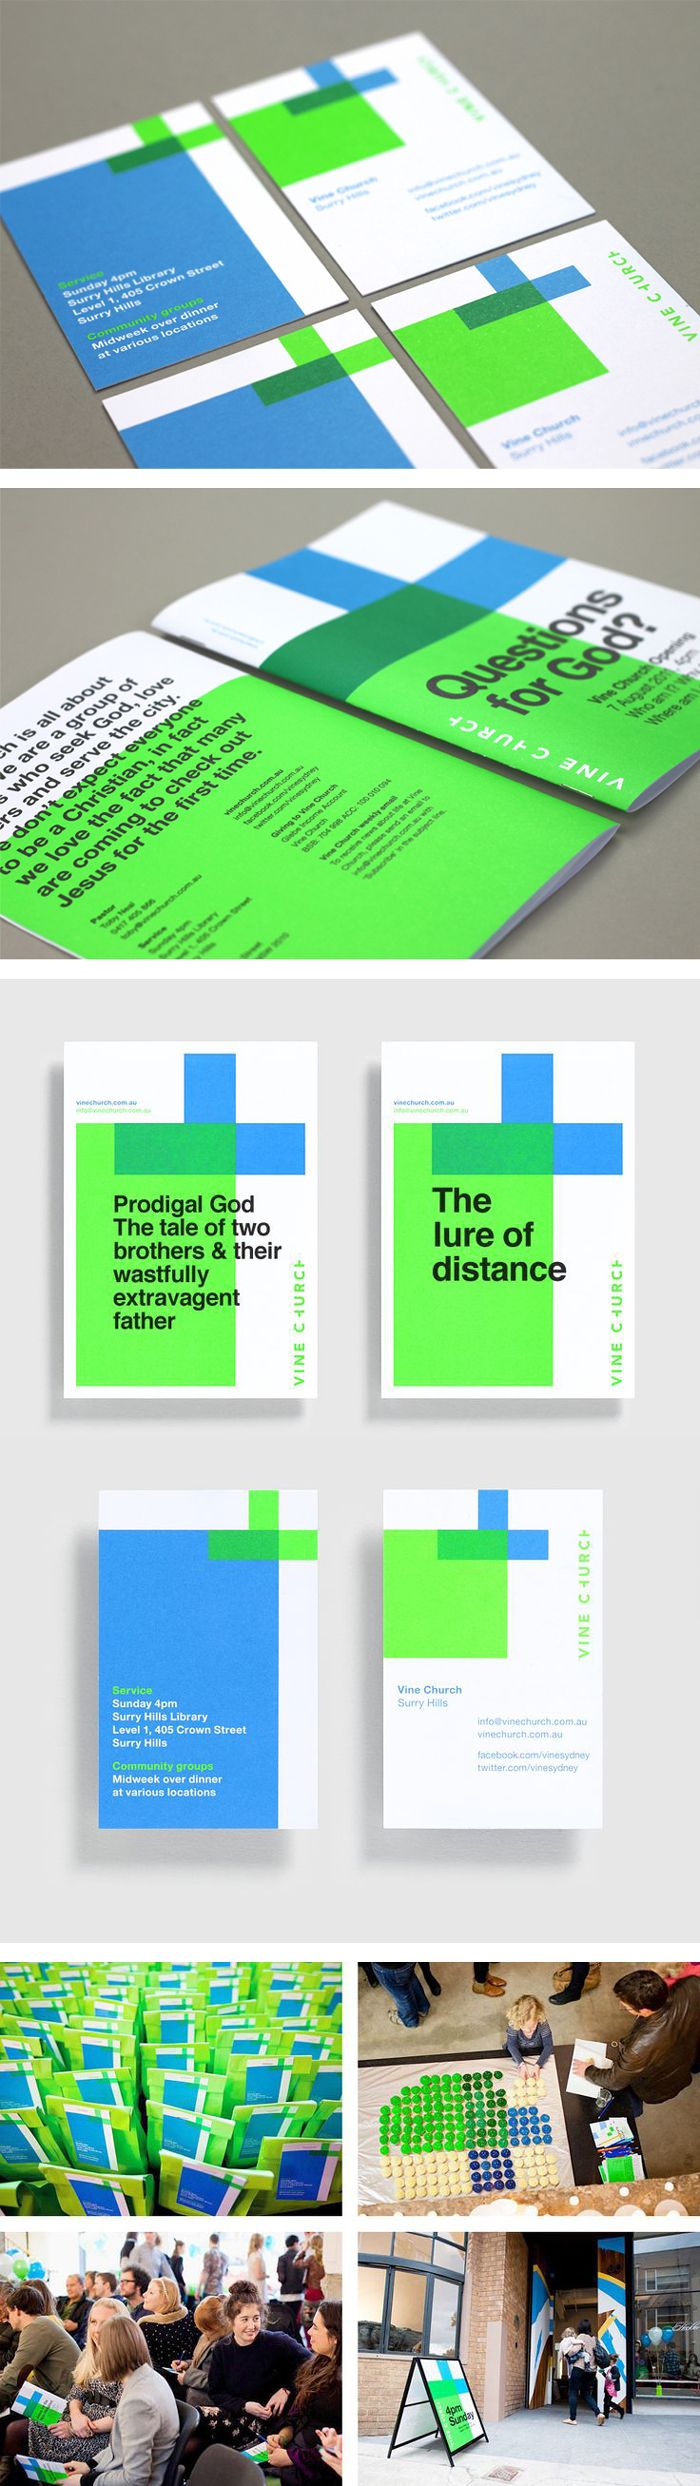 Vine Church identity and branding by Toko #branding #stationery #businesscard